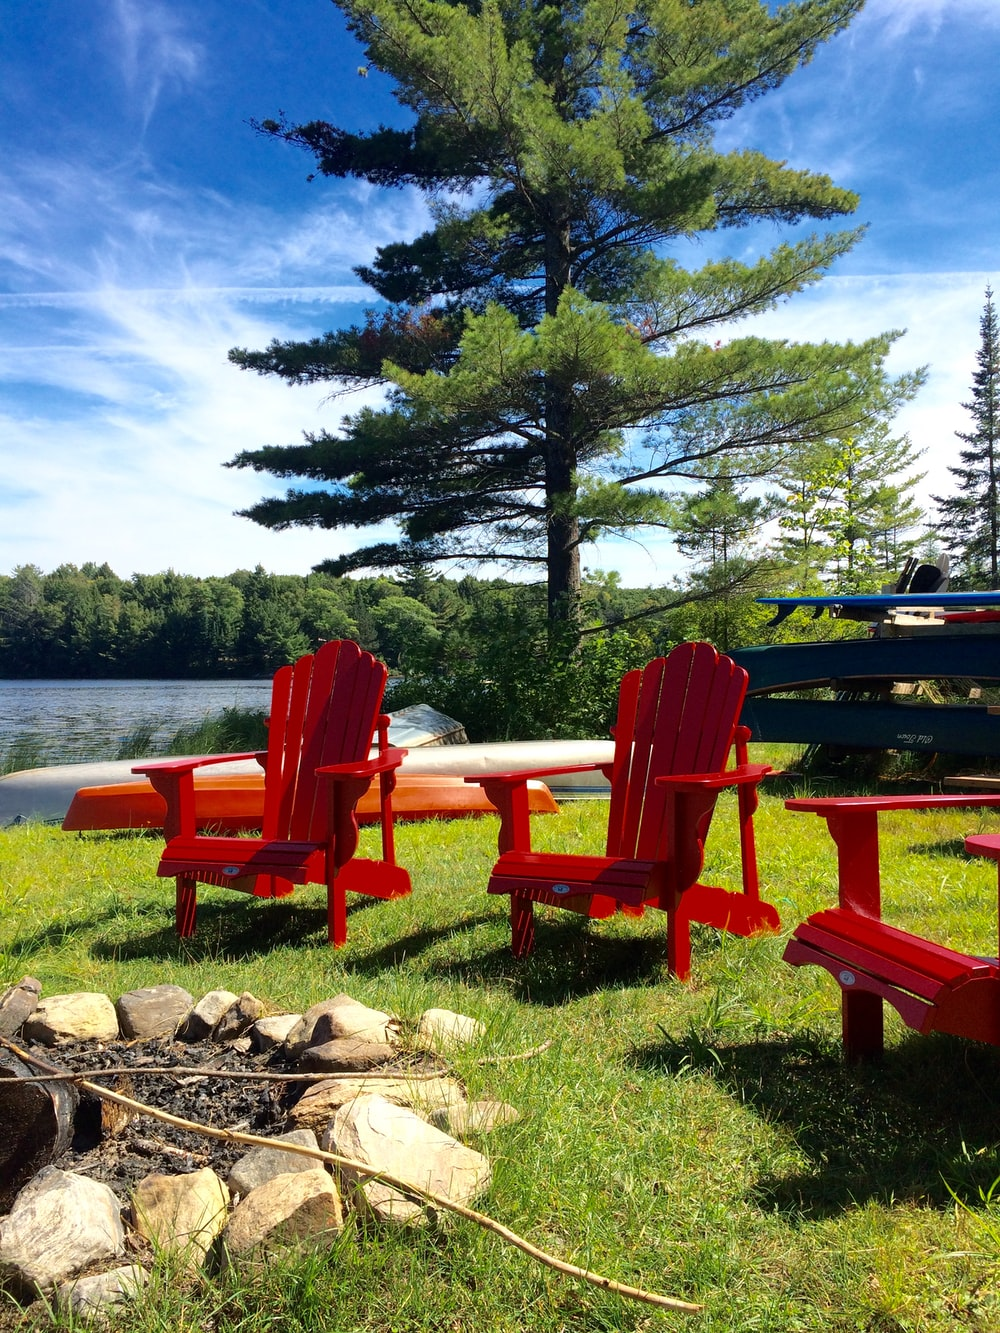 red wooden bench near body of water during daytime